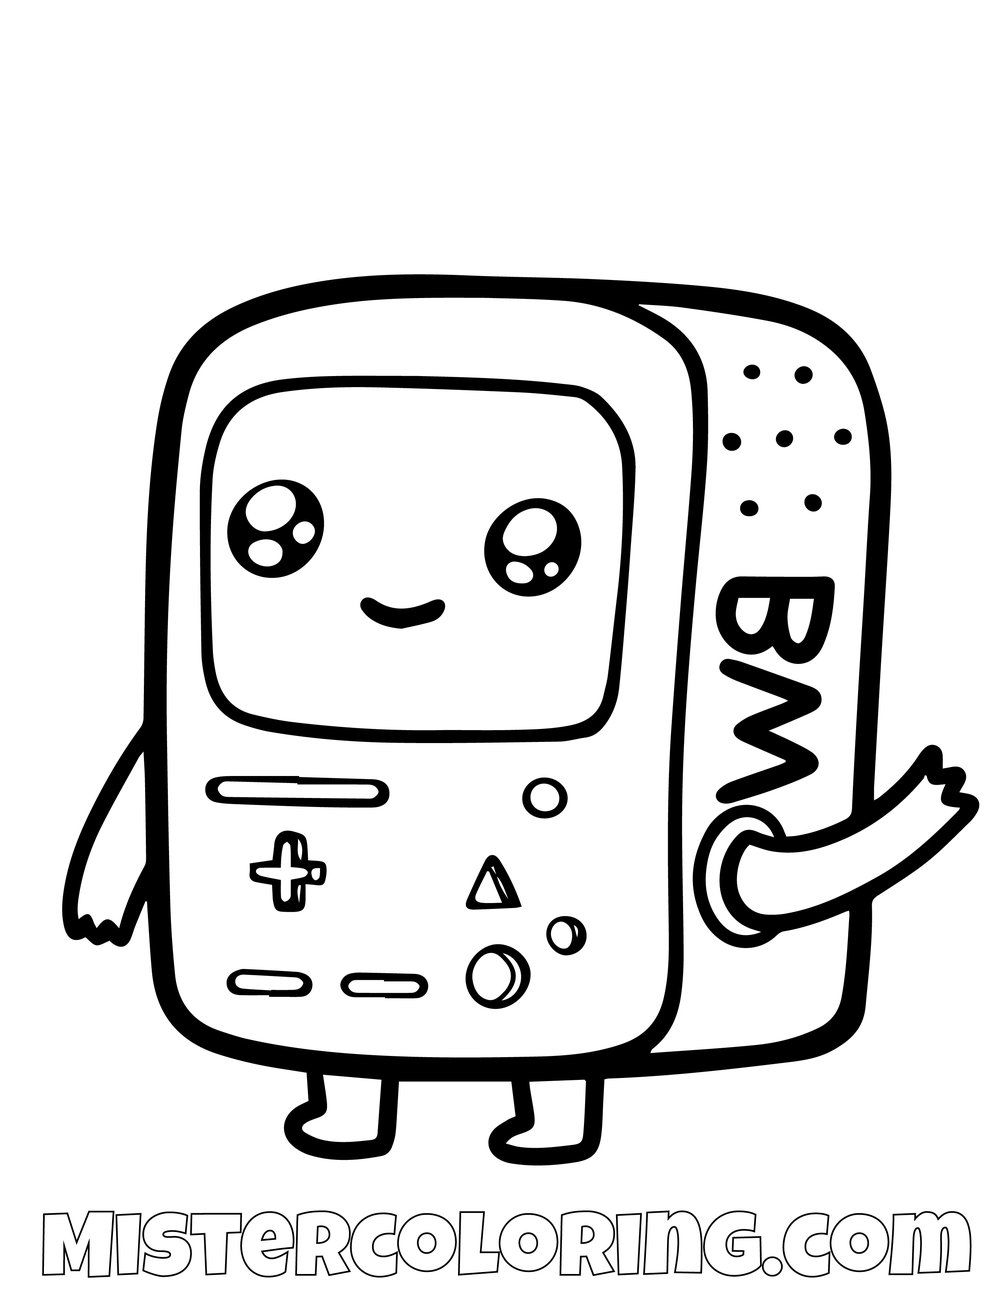 Baby Beemo Adventure Time Coloring Page Adventure Time Coloring Pages Designer Dresses Indian Adventure Time Drawings